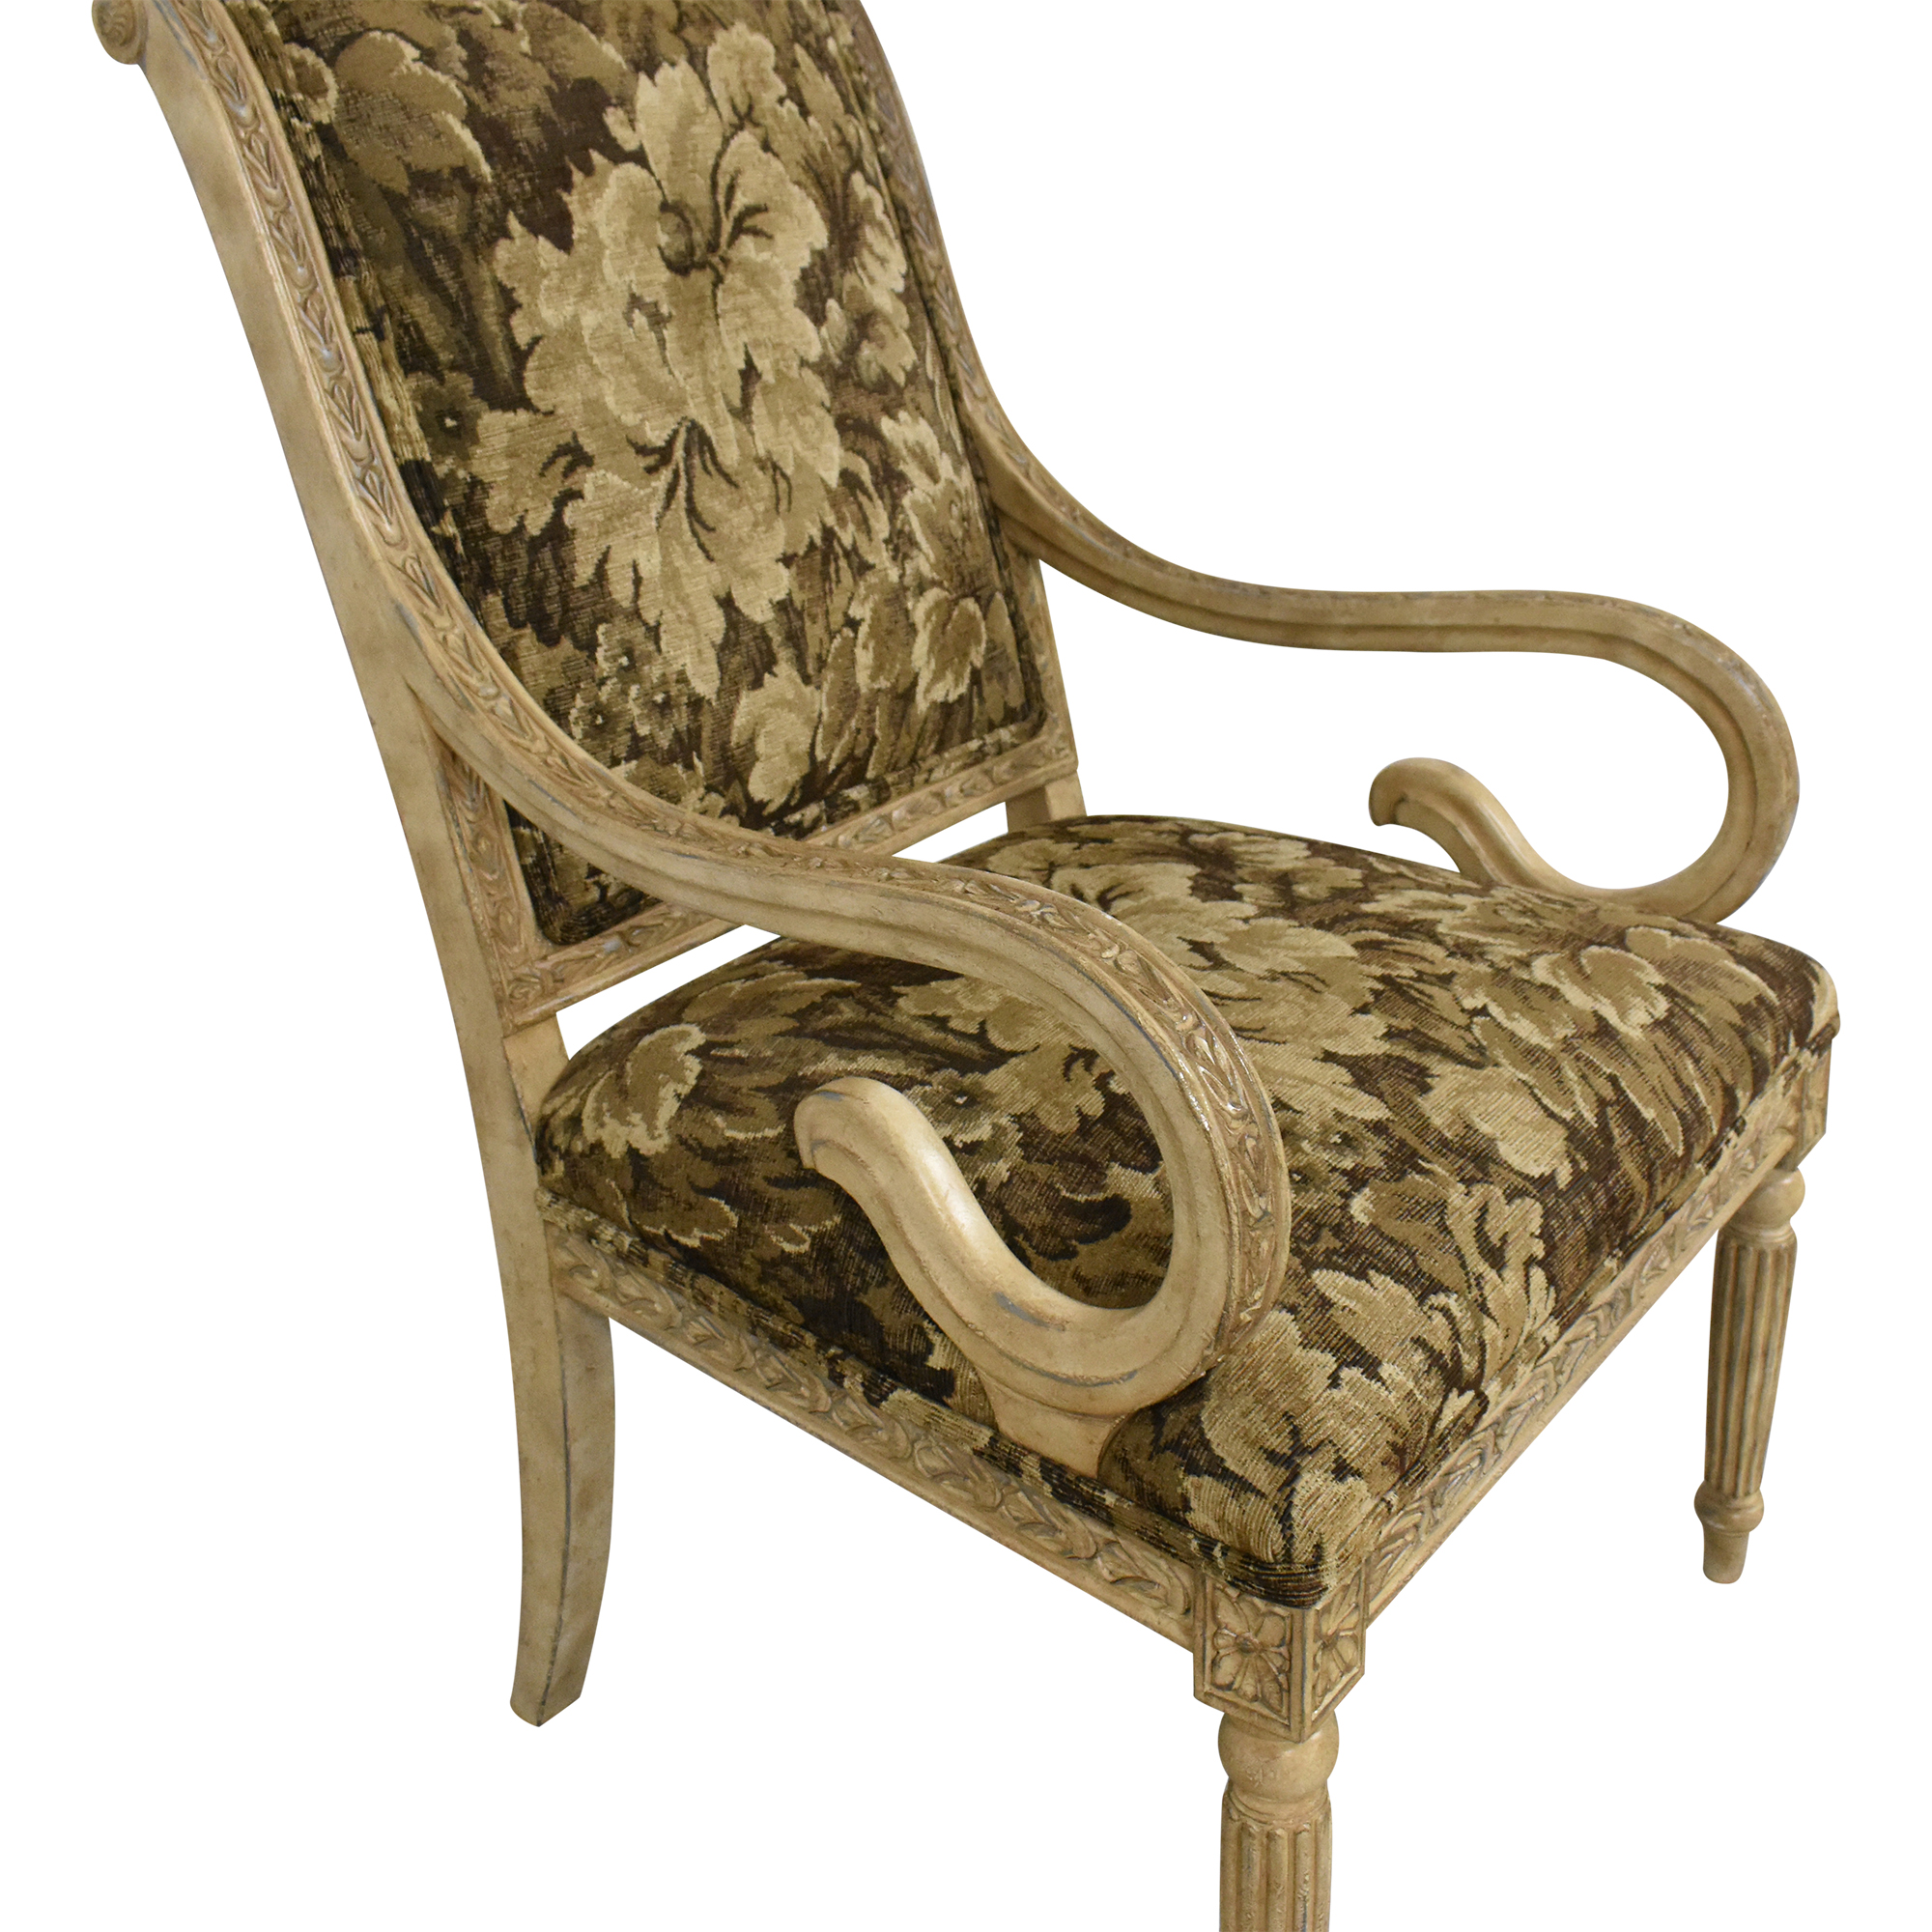 Calico Calico Decorative Accent Chair dimensions